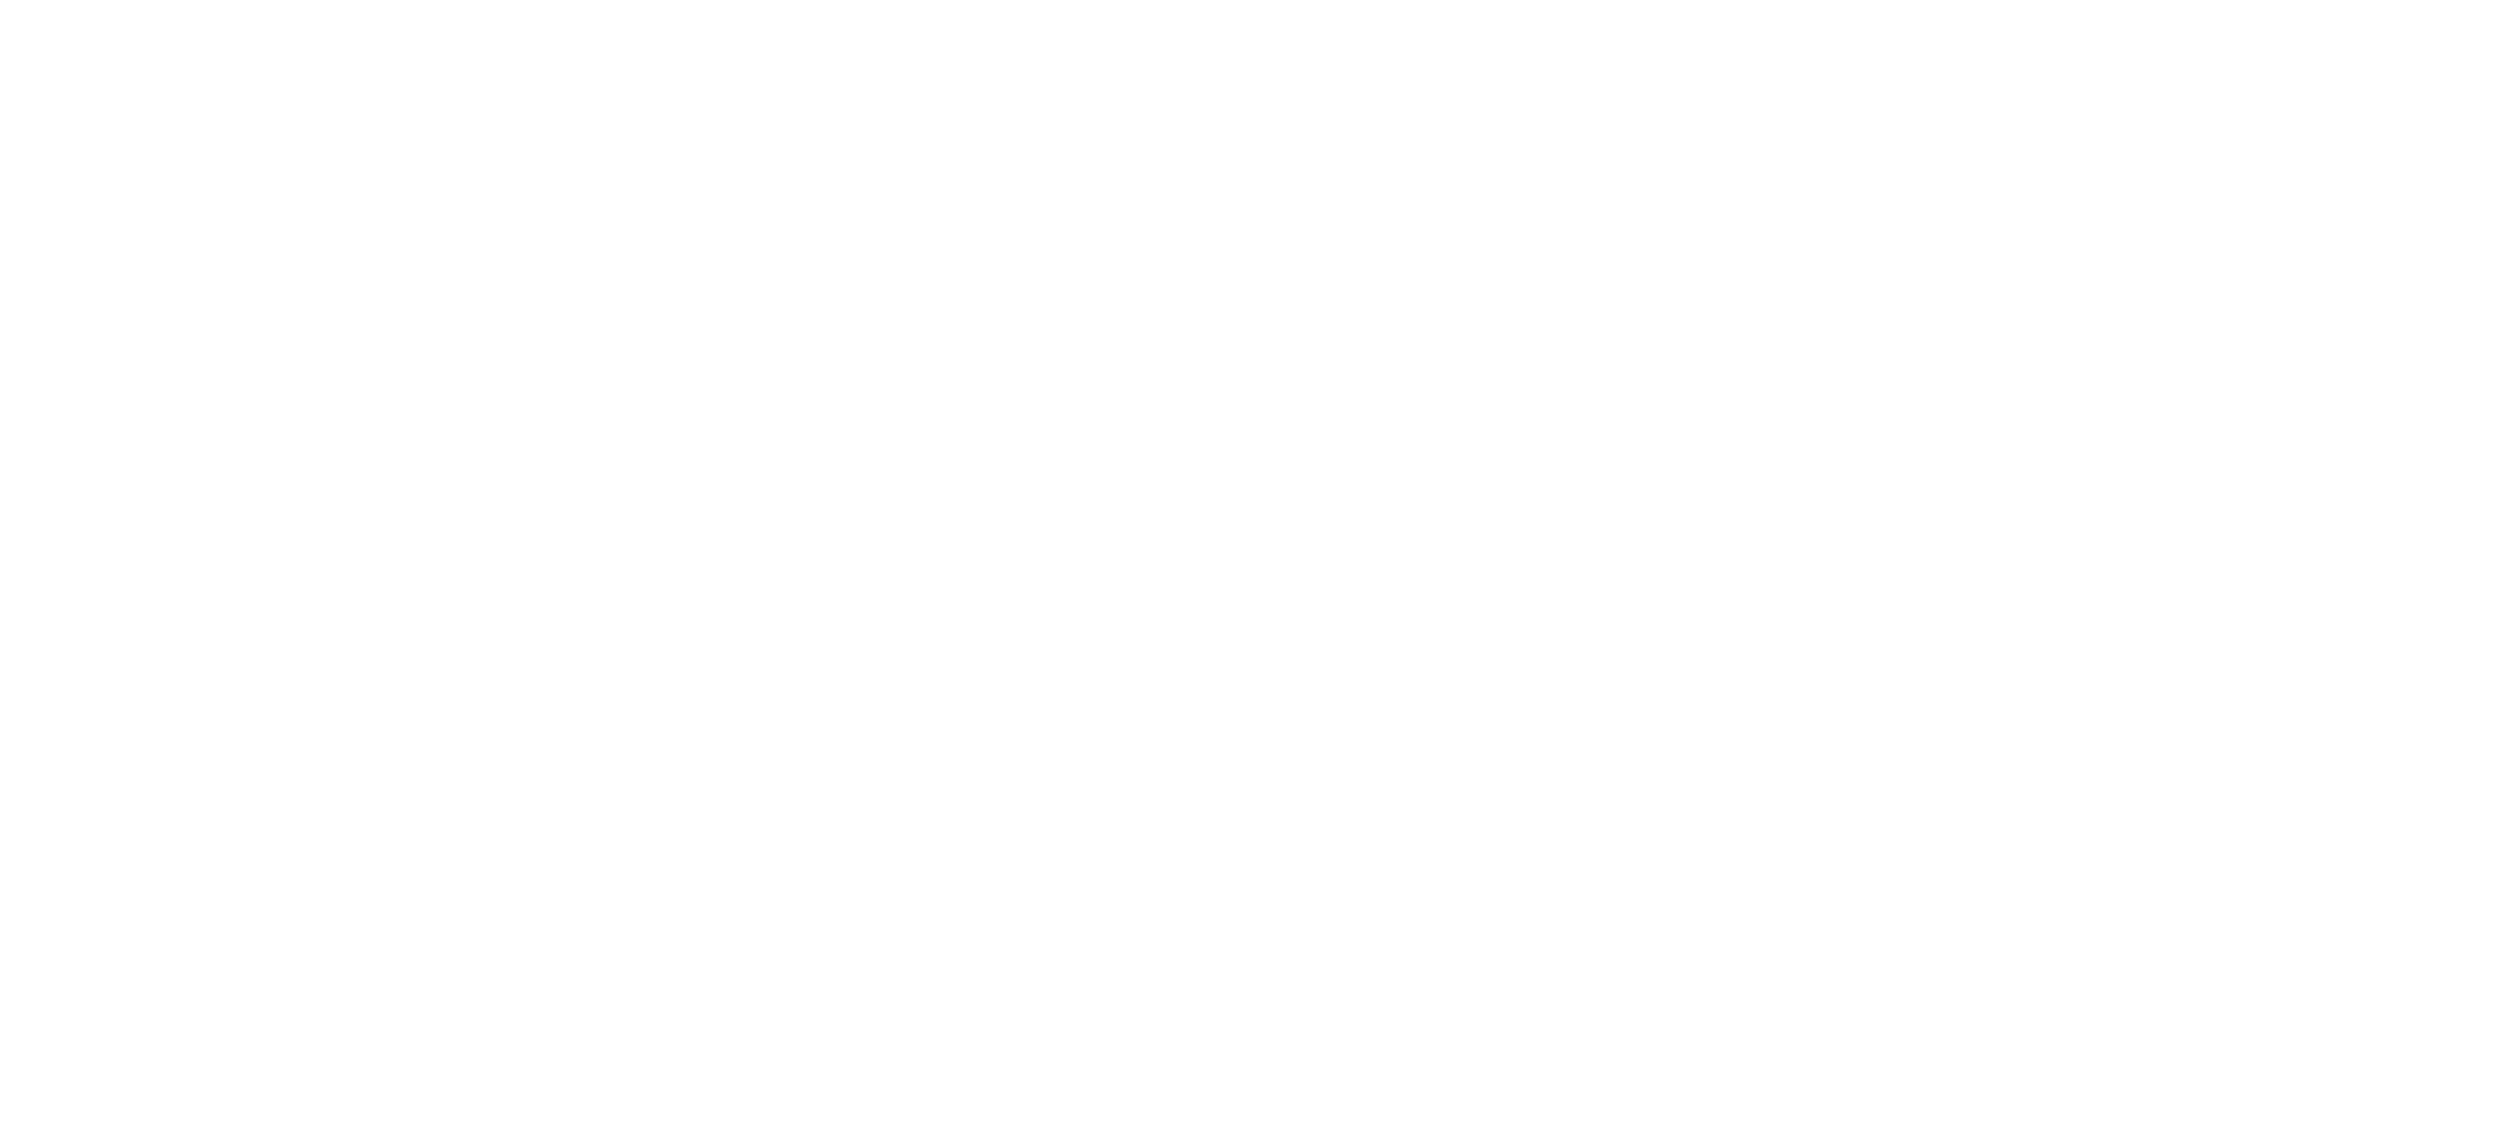 LOGOS 2CAMPINGS copie.png